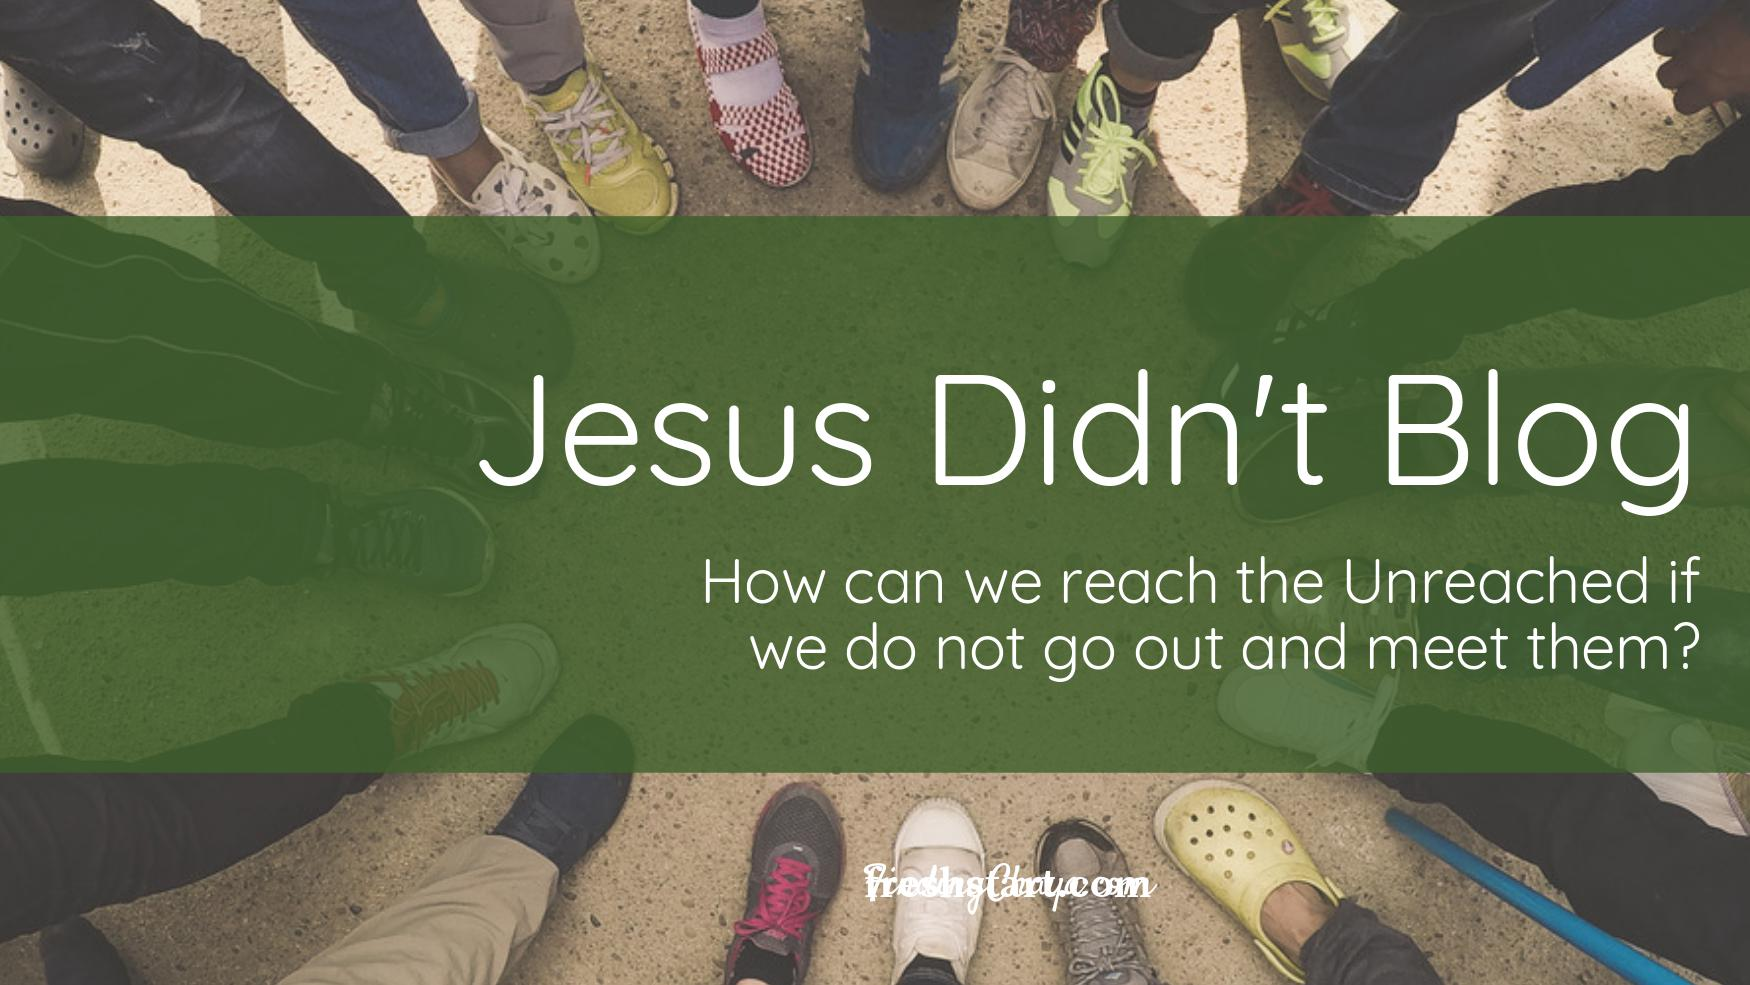 Jesus Didn't Blog    How can We Reach the Unreached if We do not Go Out and Meet Them?